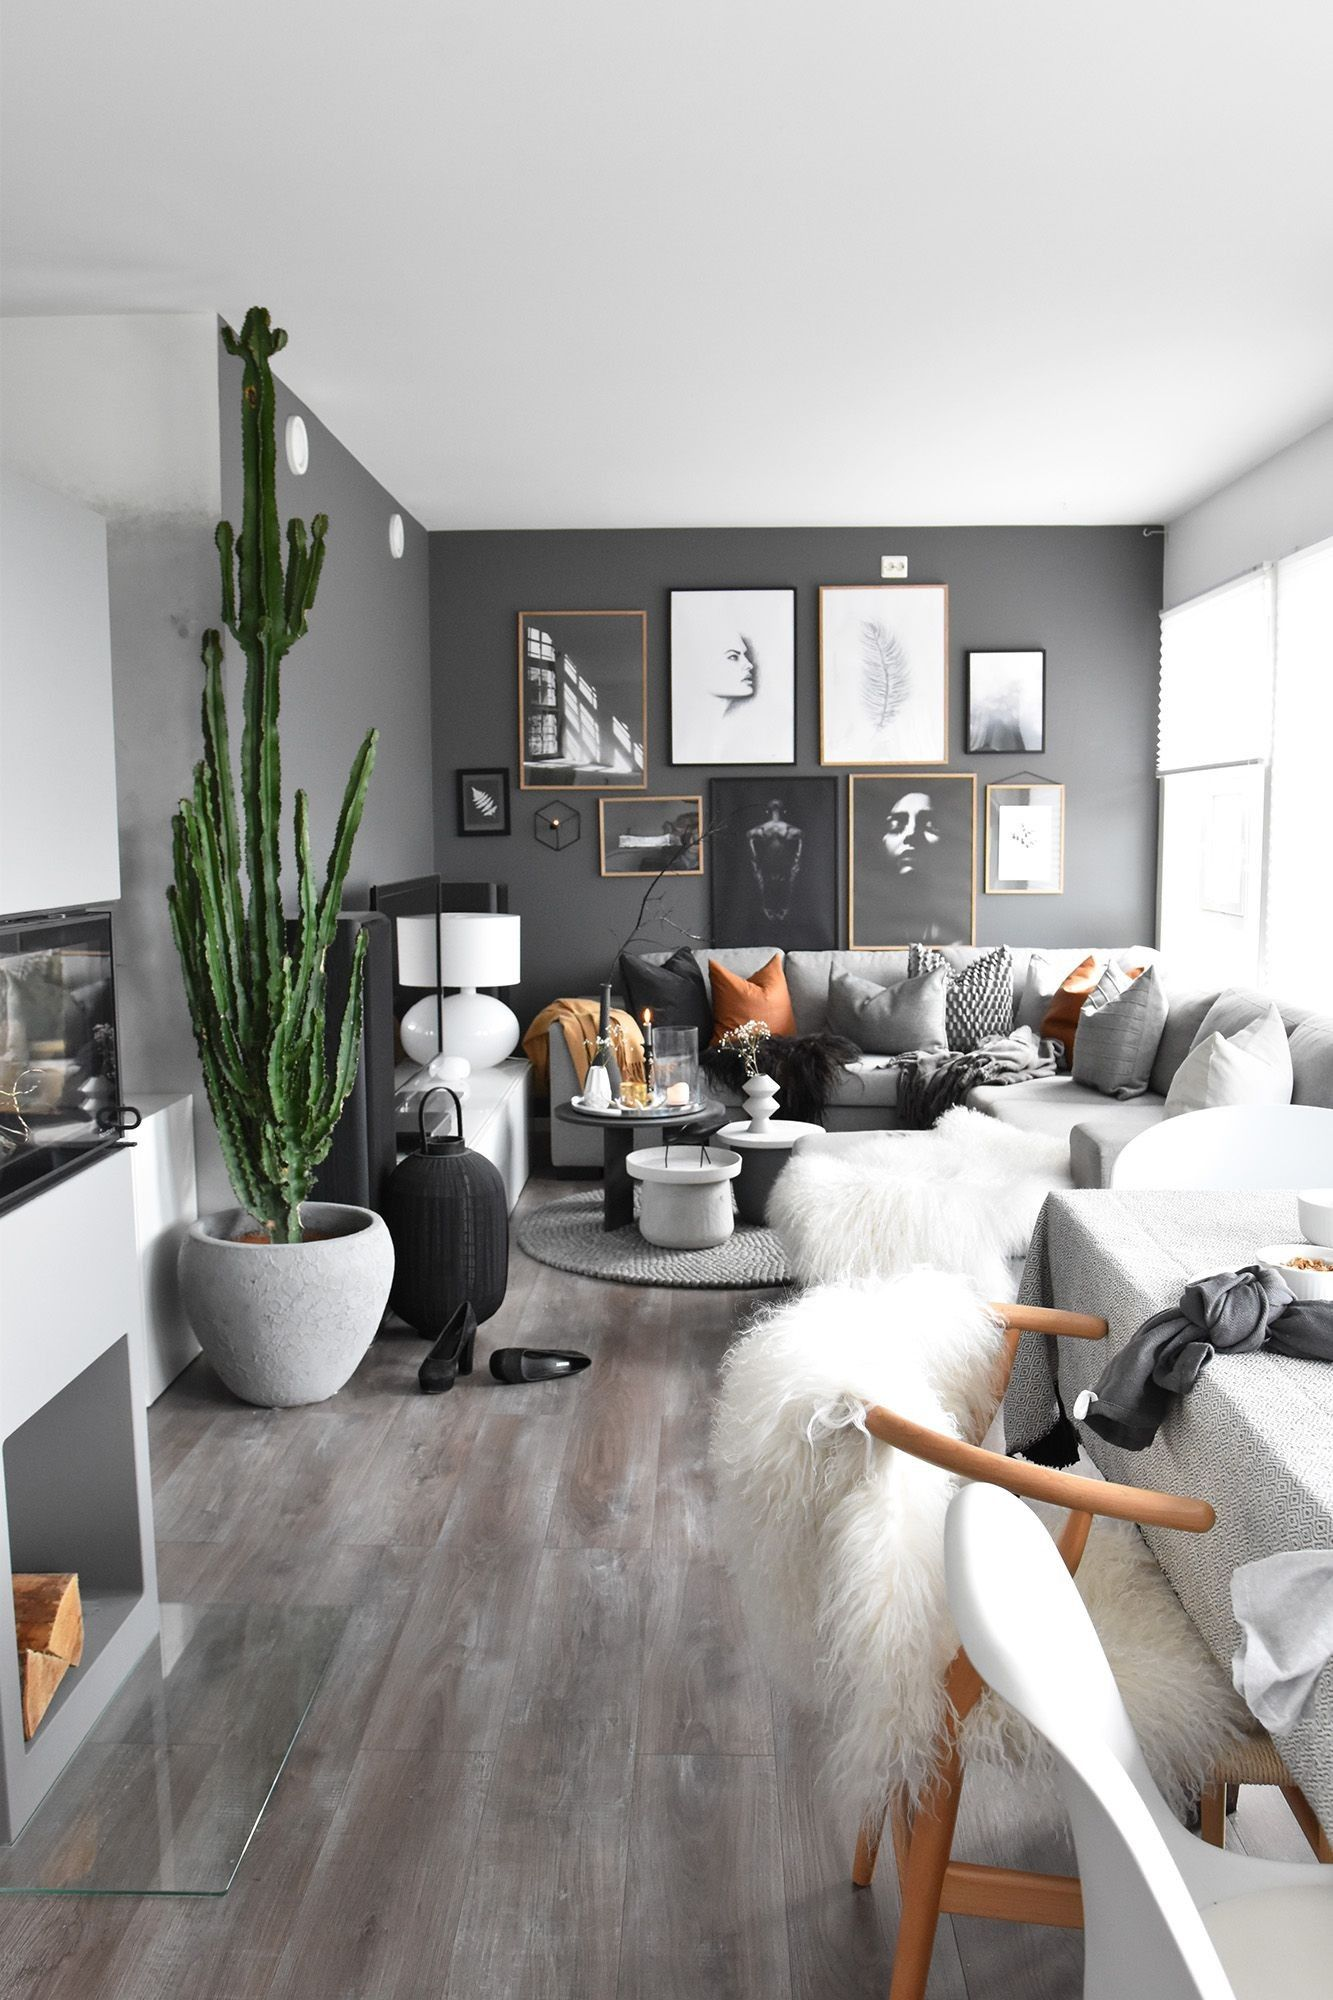 Best Scandinavian Interior Design Inspiration in 20  Black